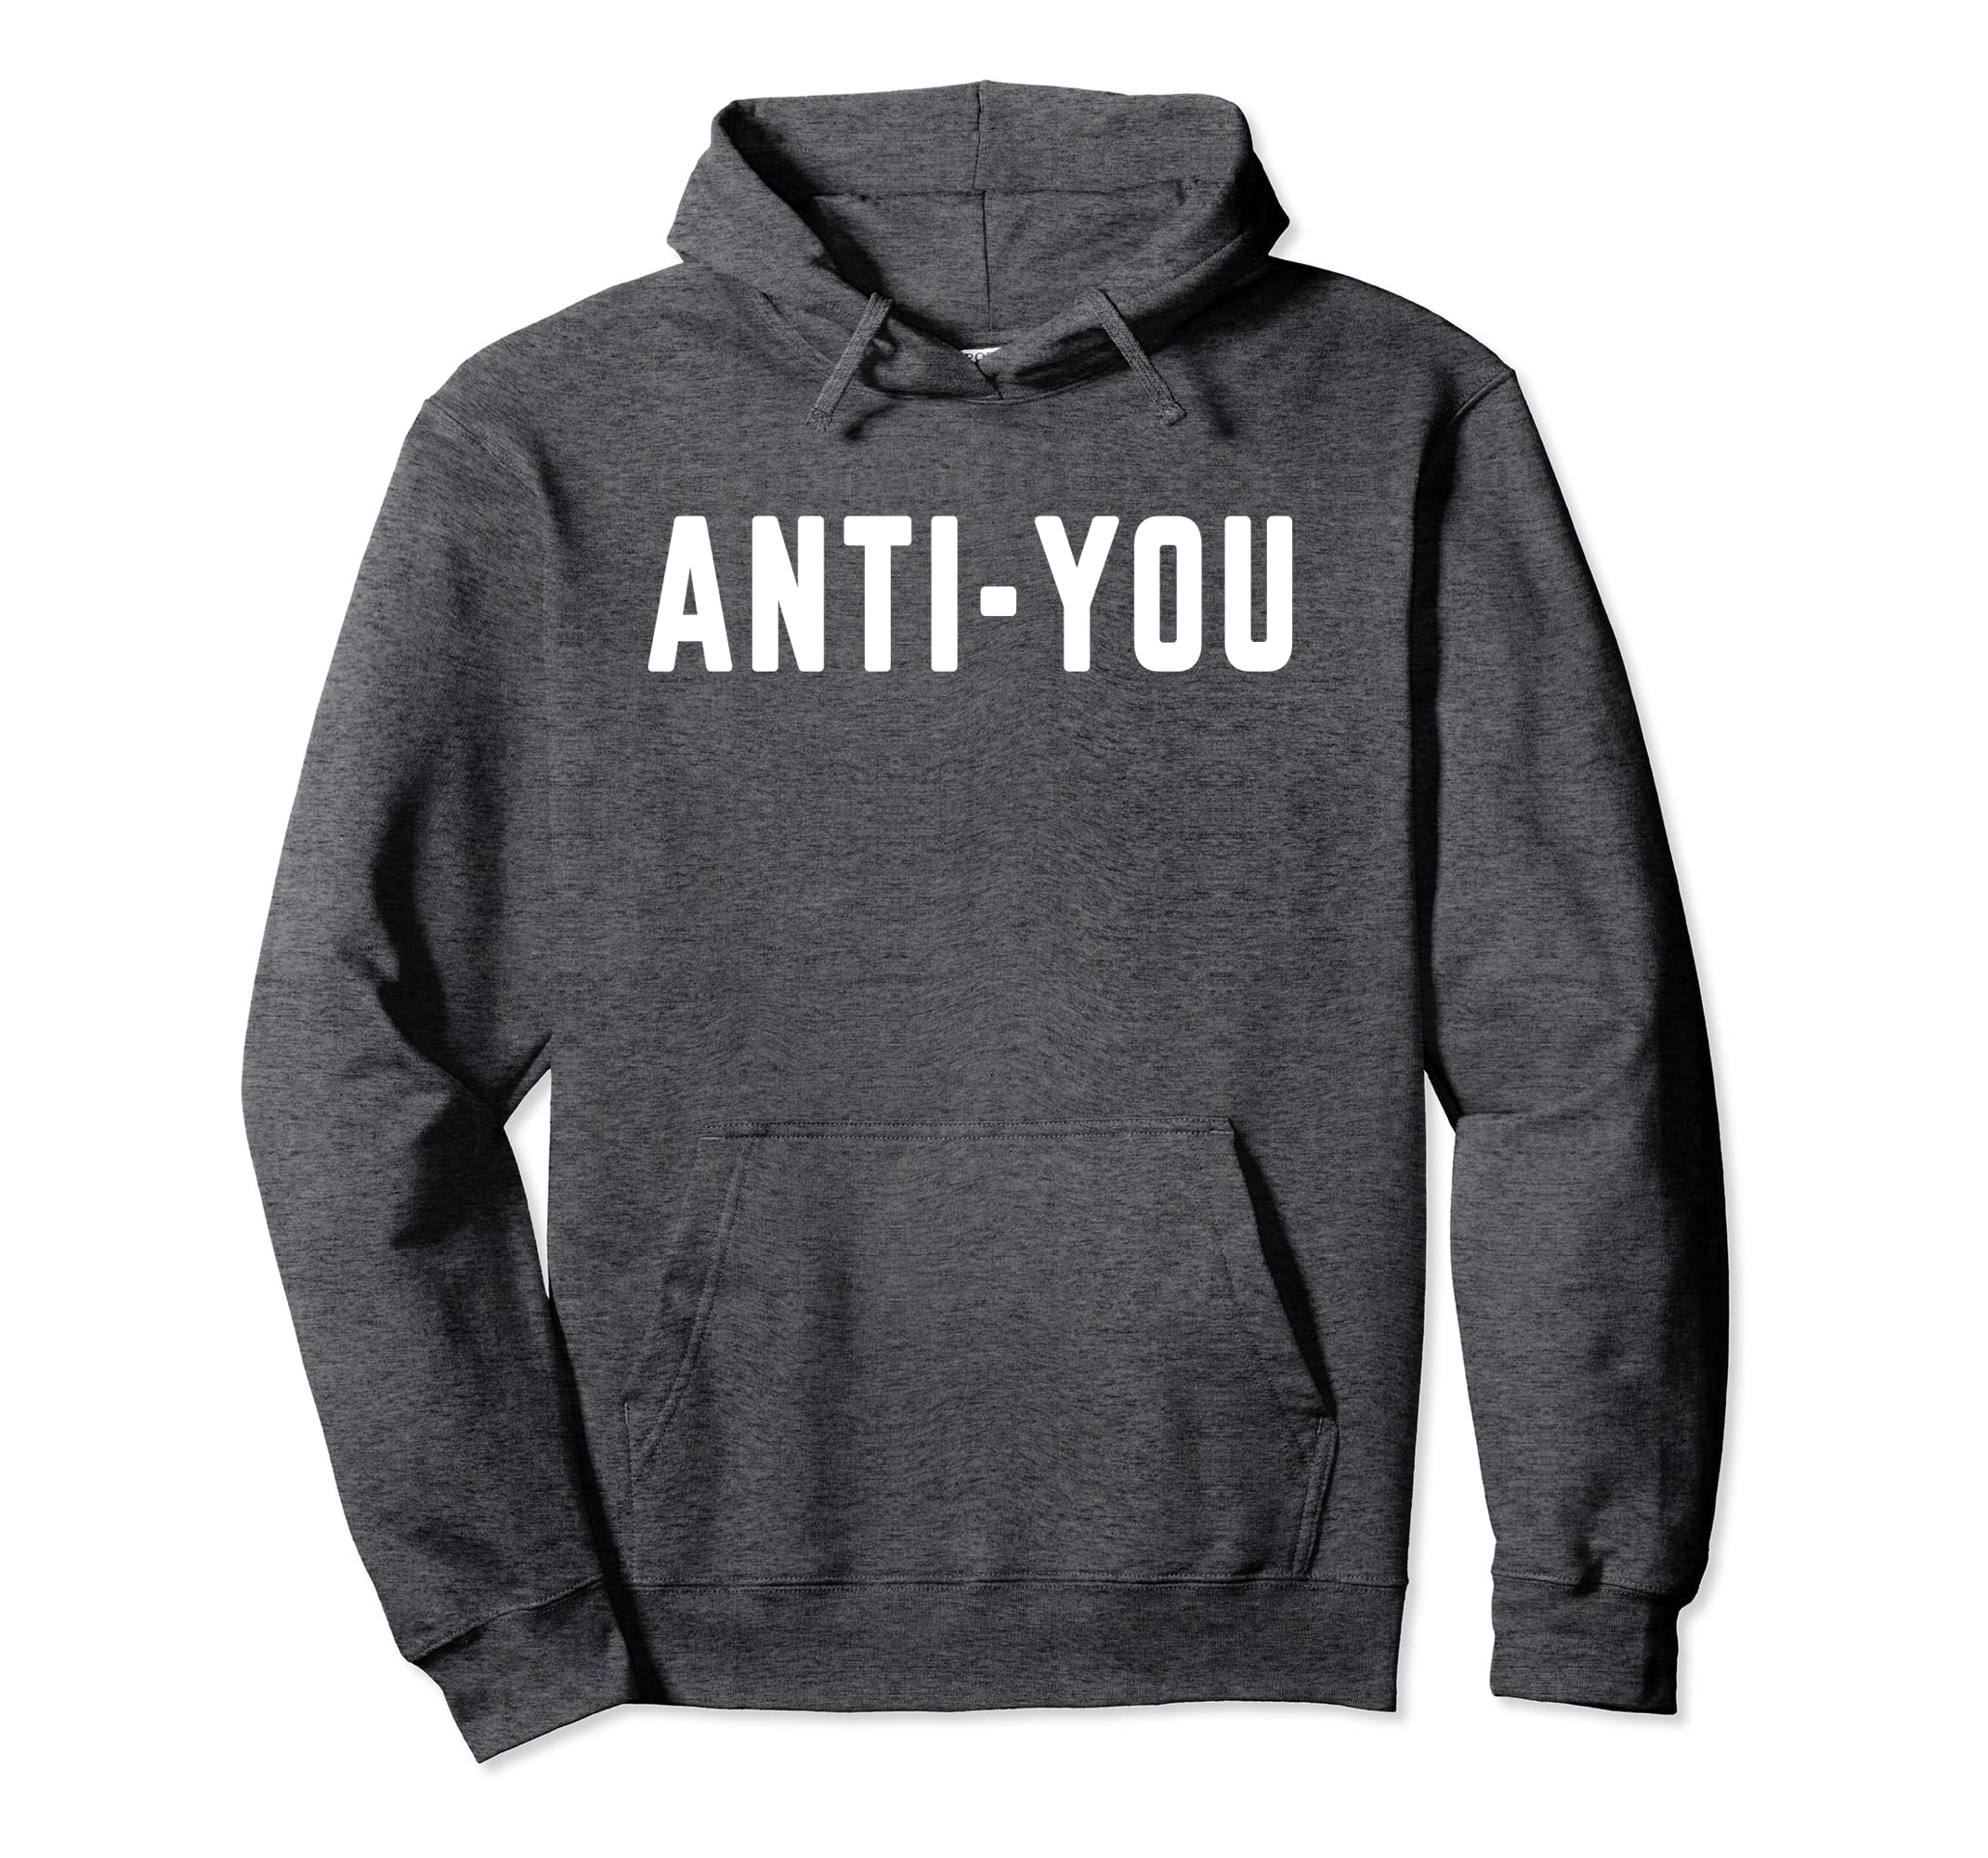 bc299f8a7e85 Amazon.com  Anti-You Hoodie  Clothing